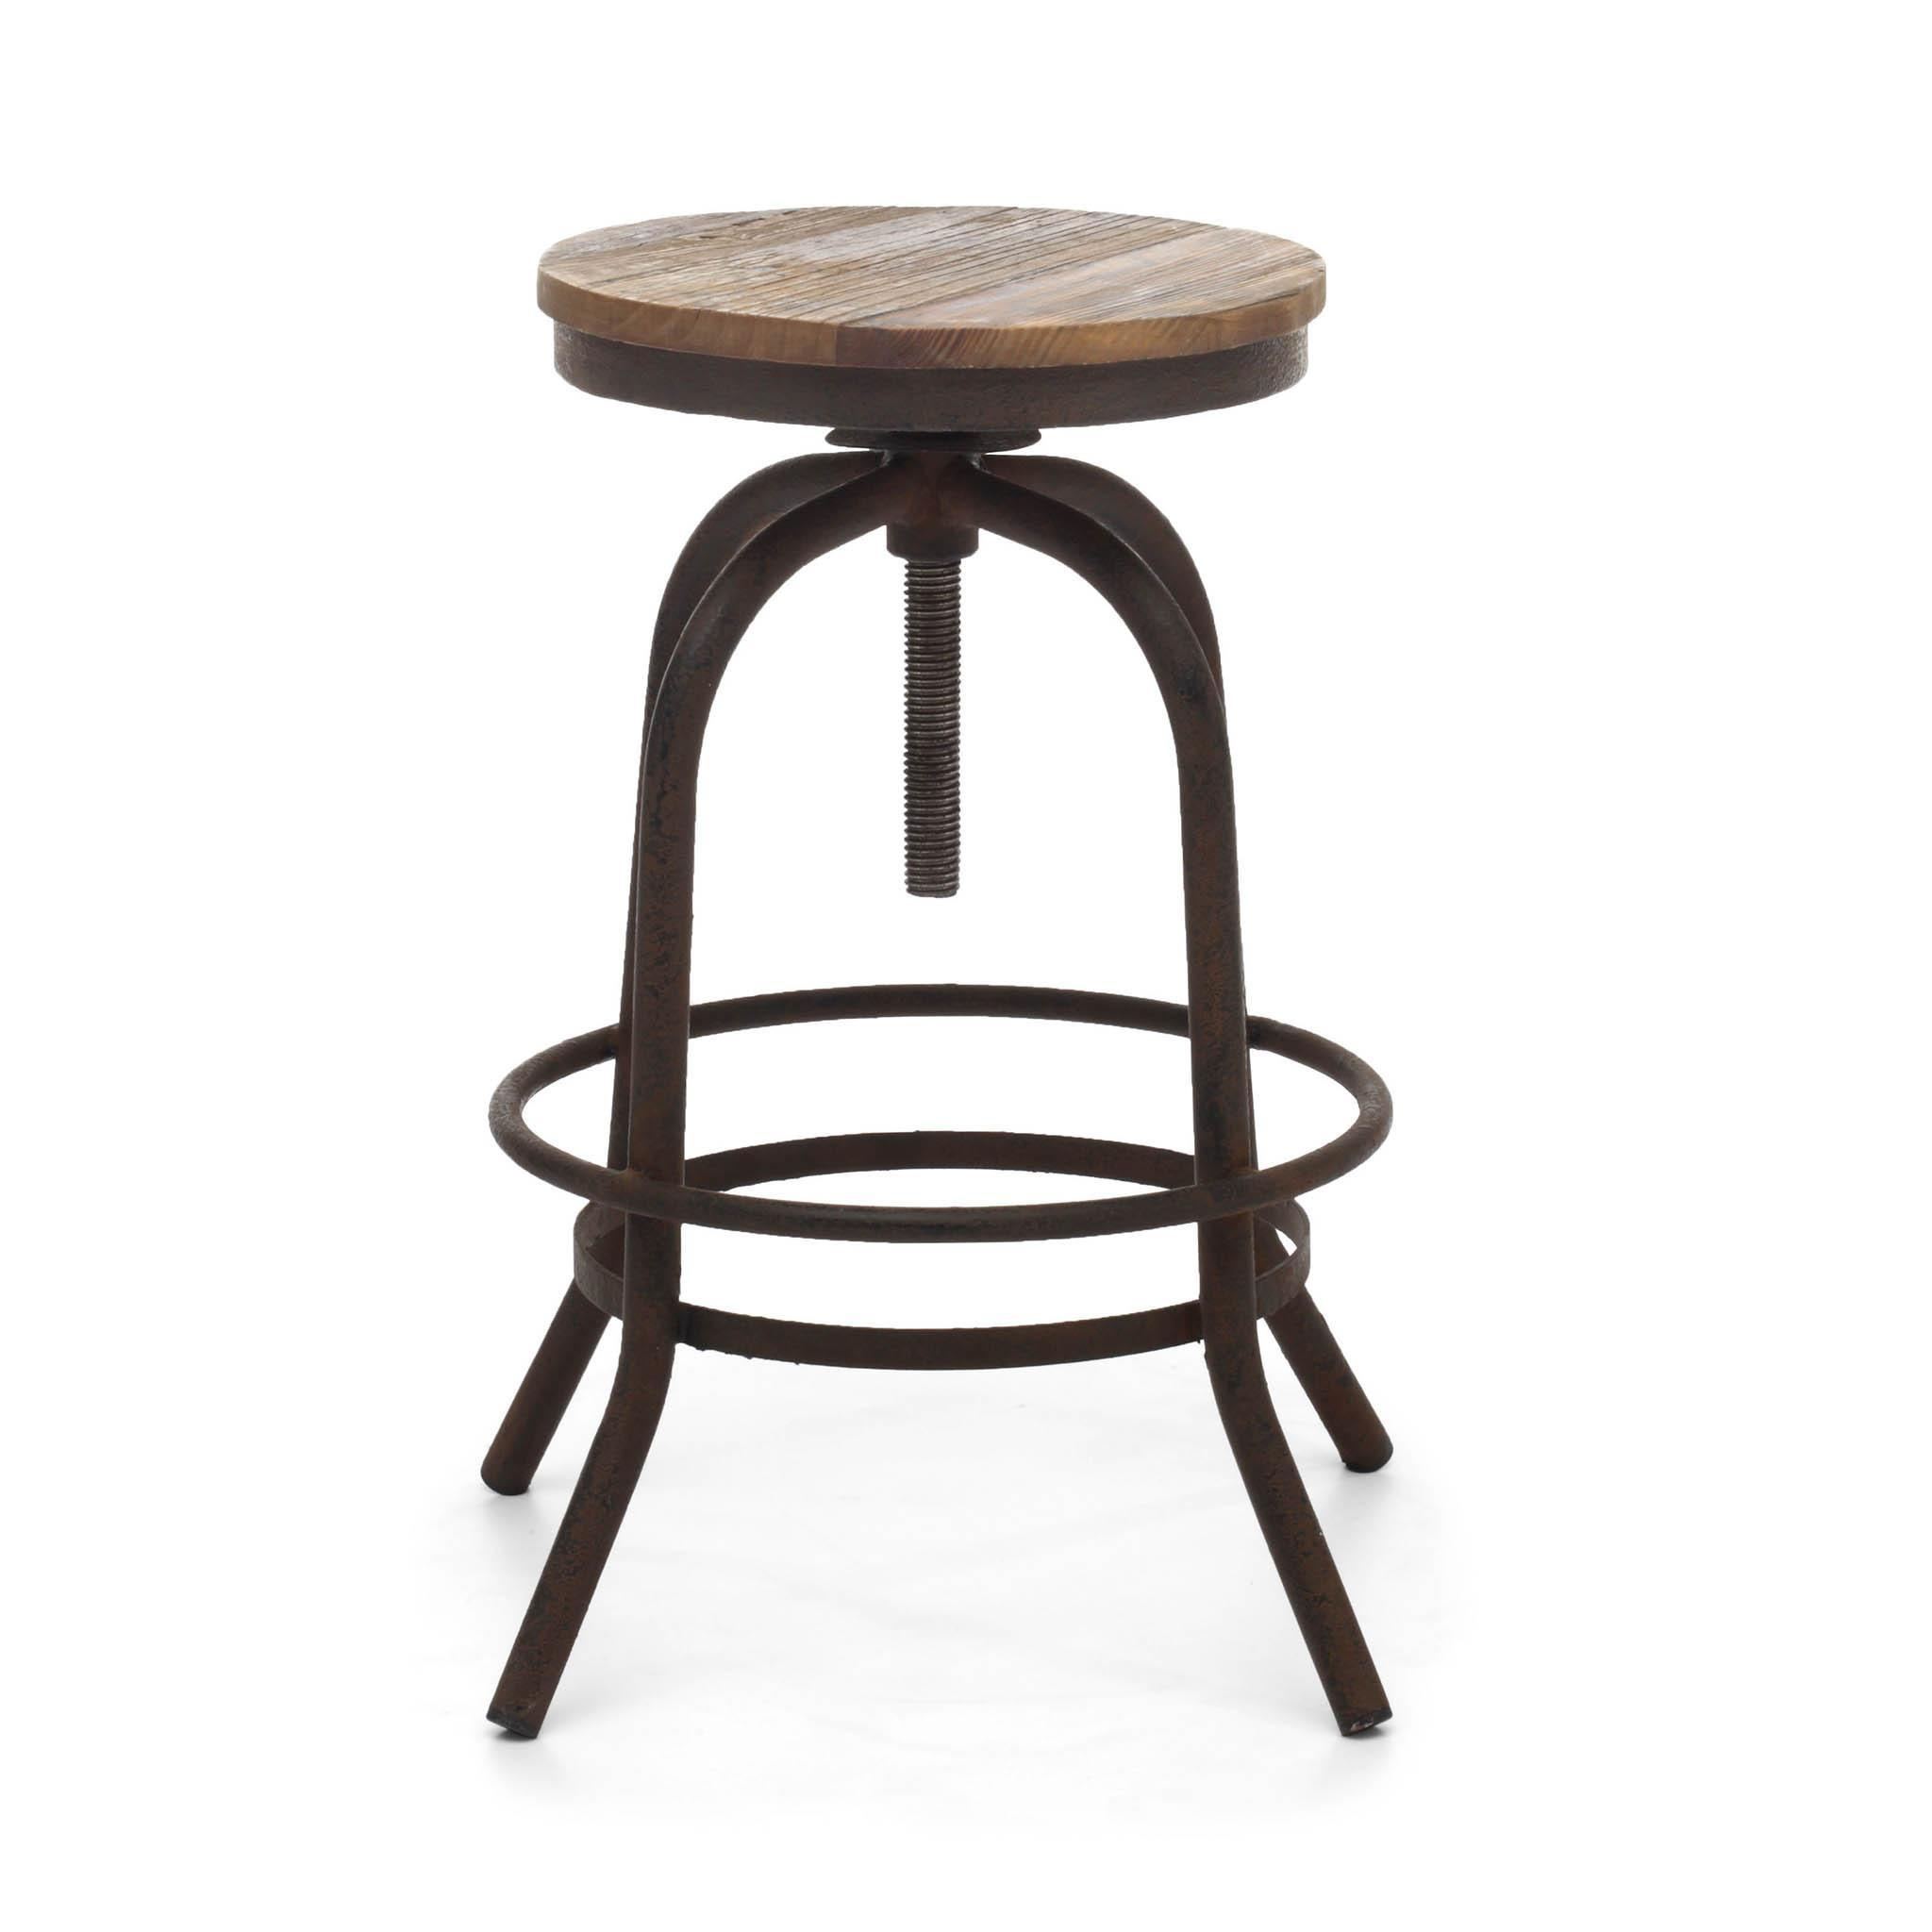 zuo twin peaks adjustable counter stool  bar stool boutique -  bar stool  twin peaks adjustable counter stool